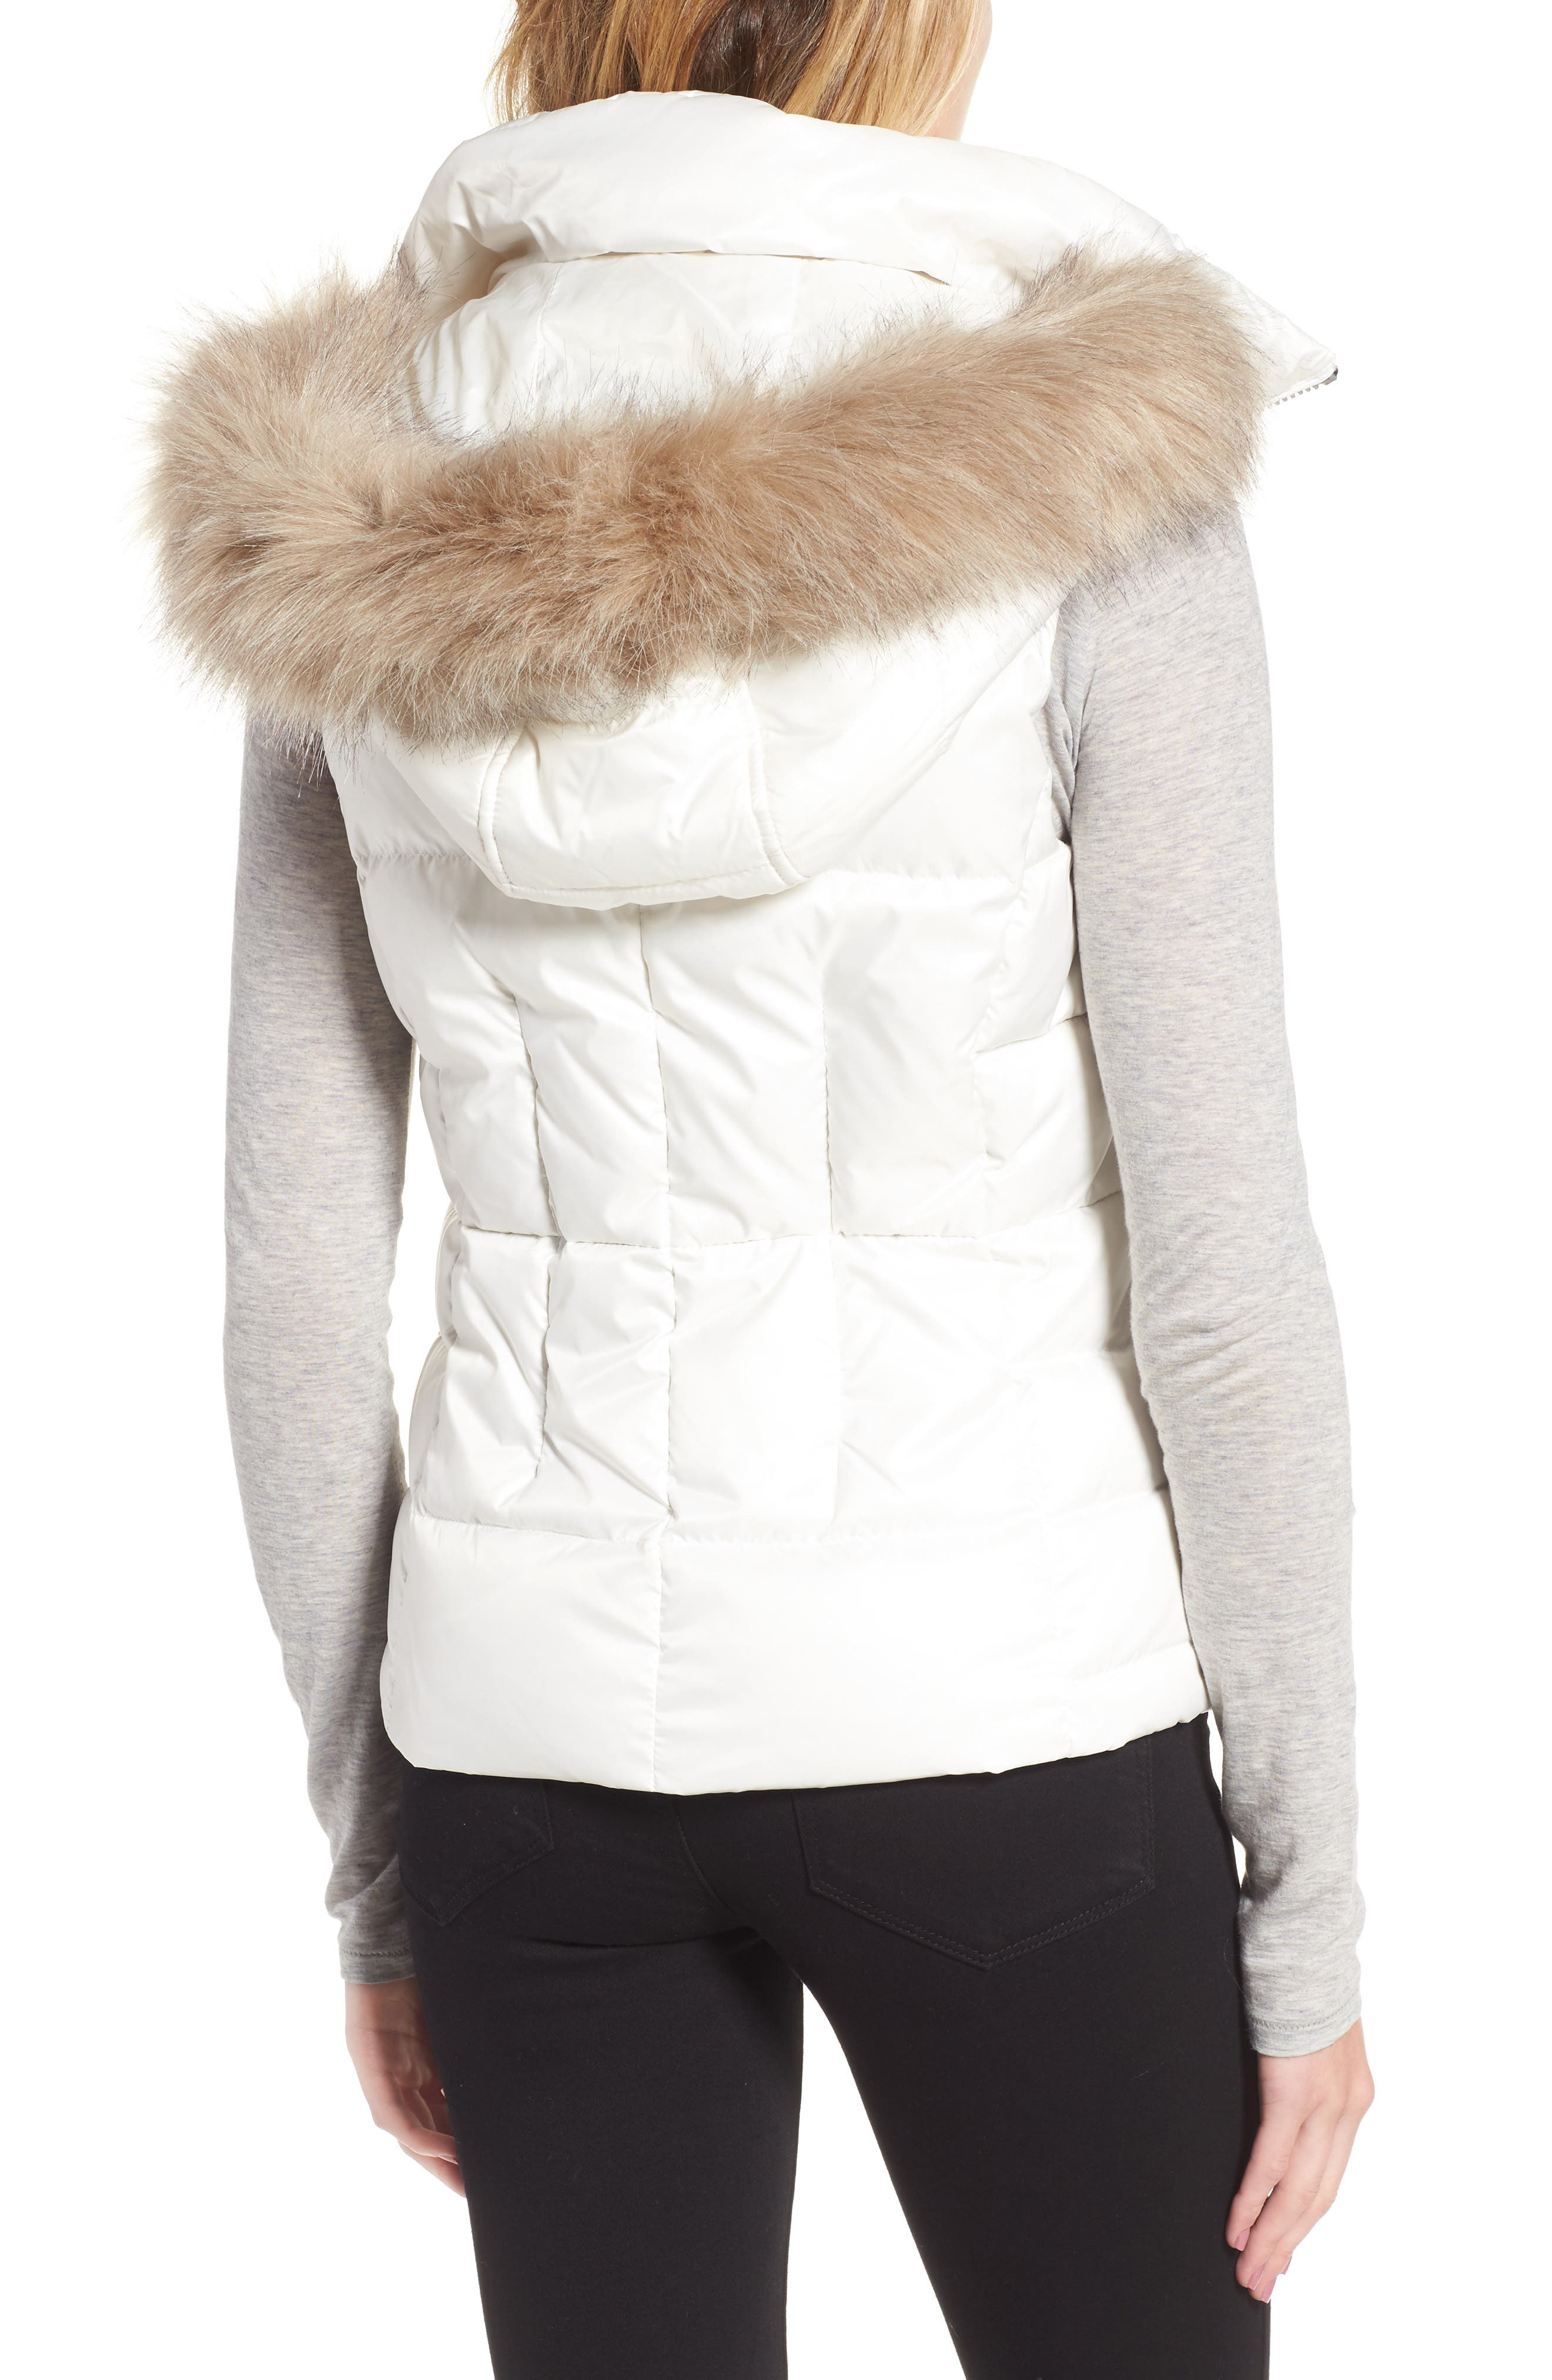 Lanie Puffer Vest with Faux Fur,                             Alternate thumbnail 2, color,                             White